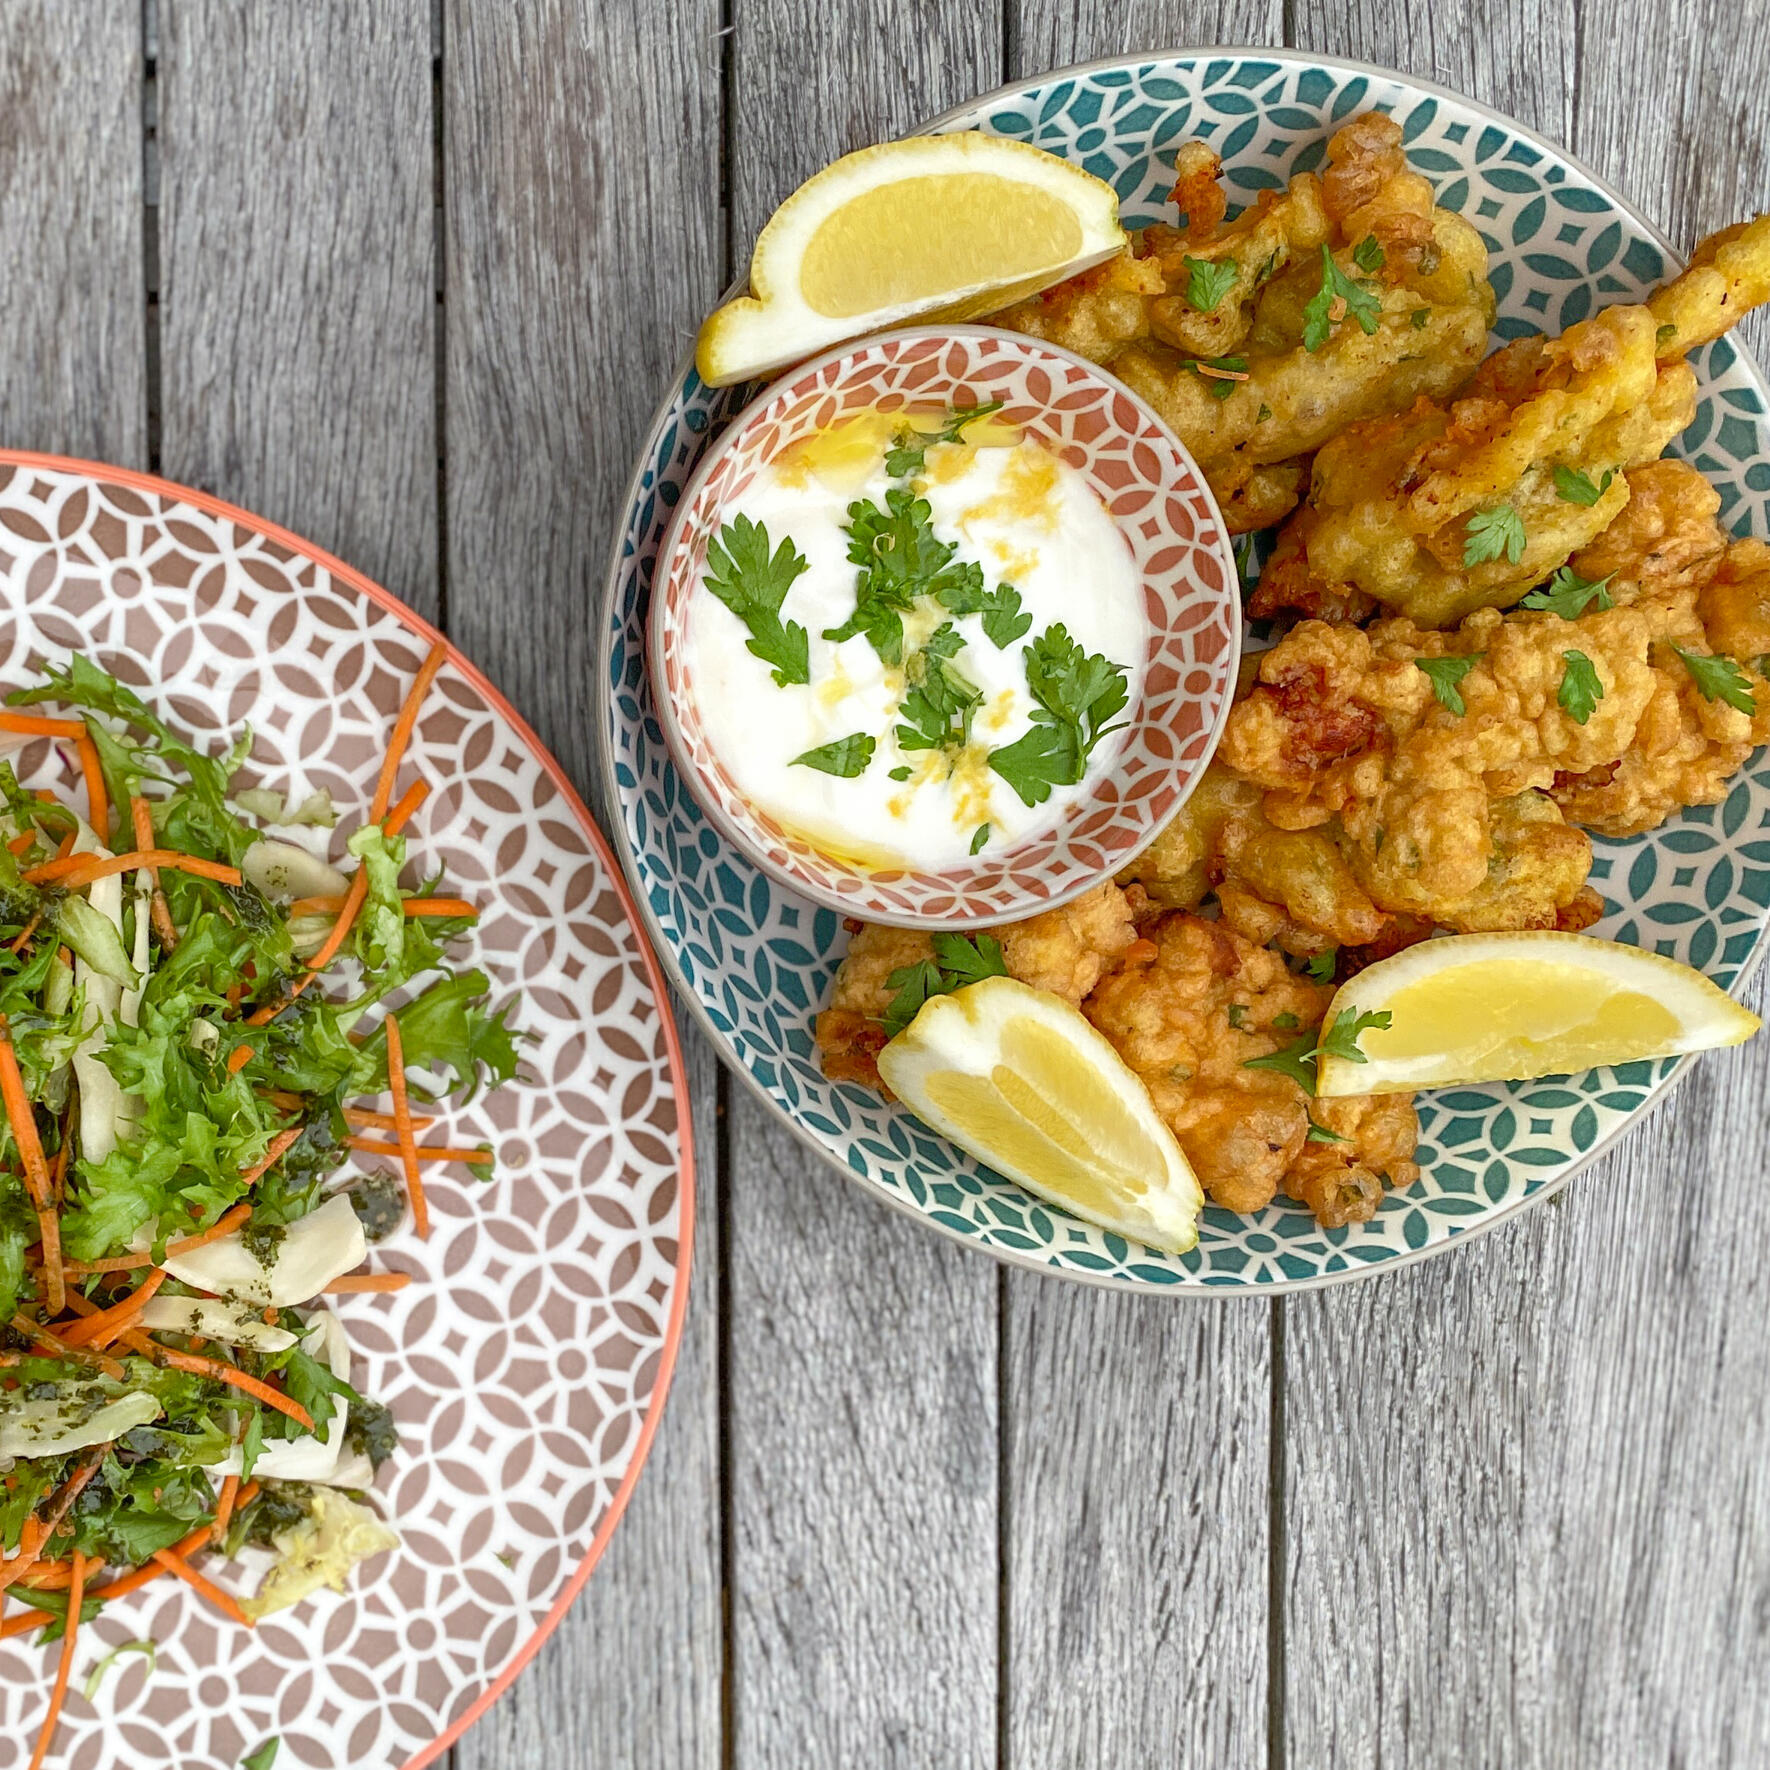 Moroccan Fried Chicken On Table